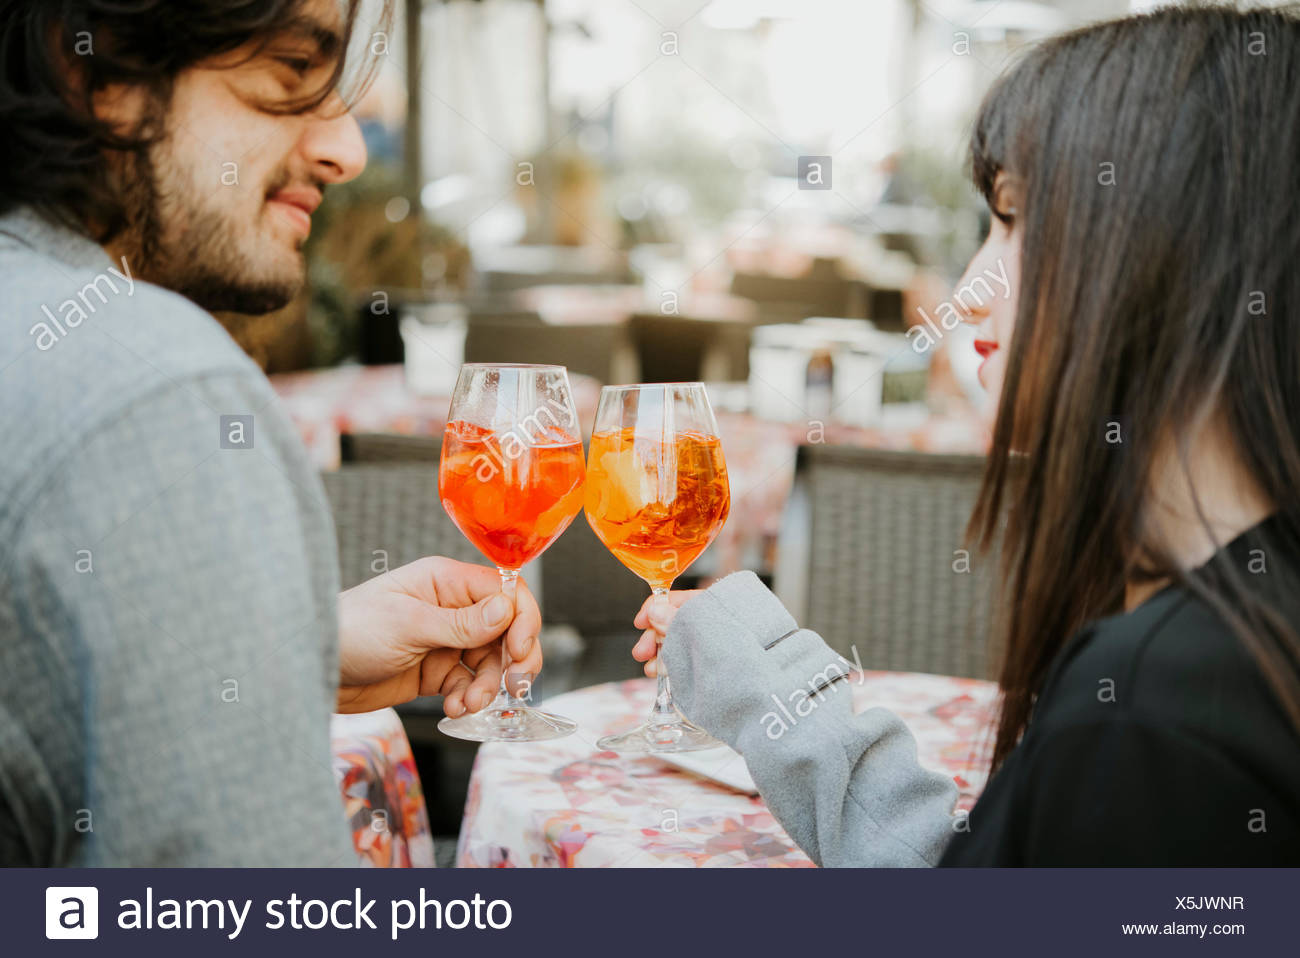 Young couple sitting outside cafe, holding drinks, making a toast - Stock Image